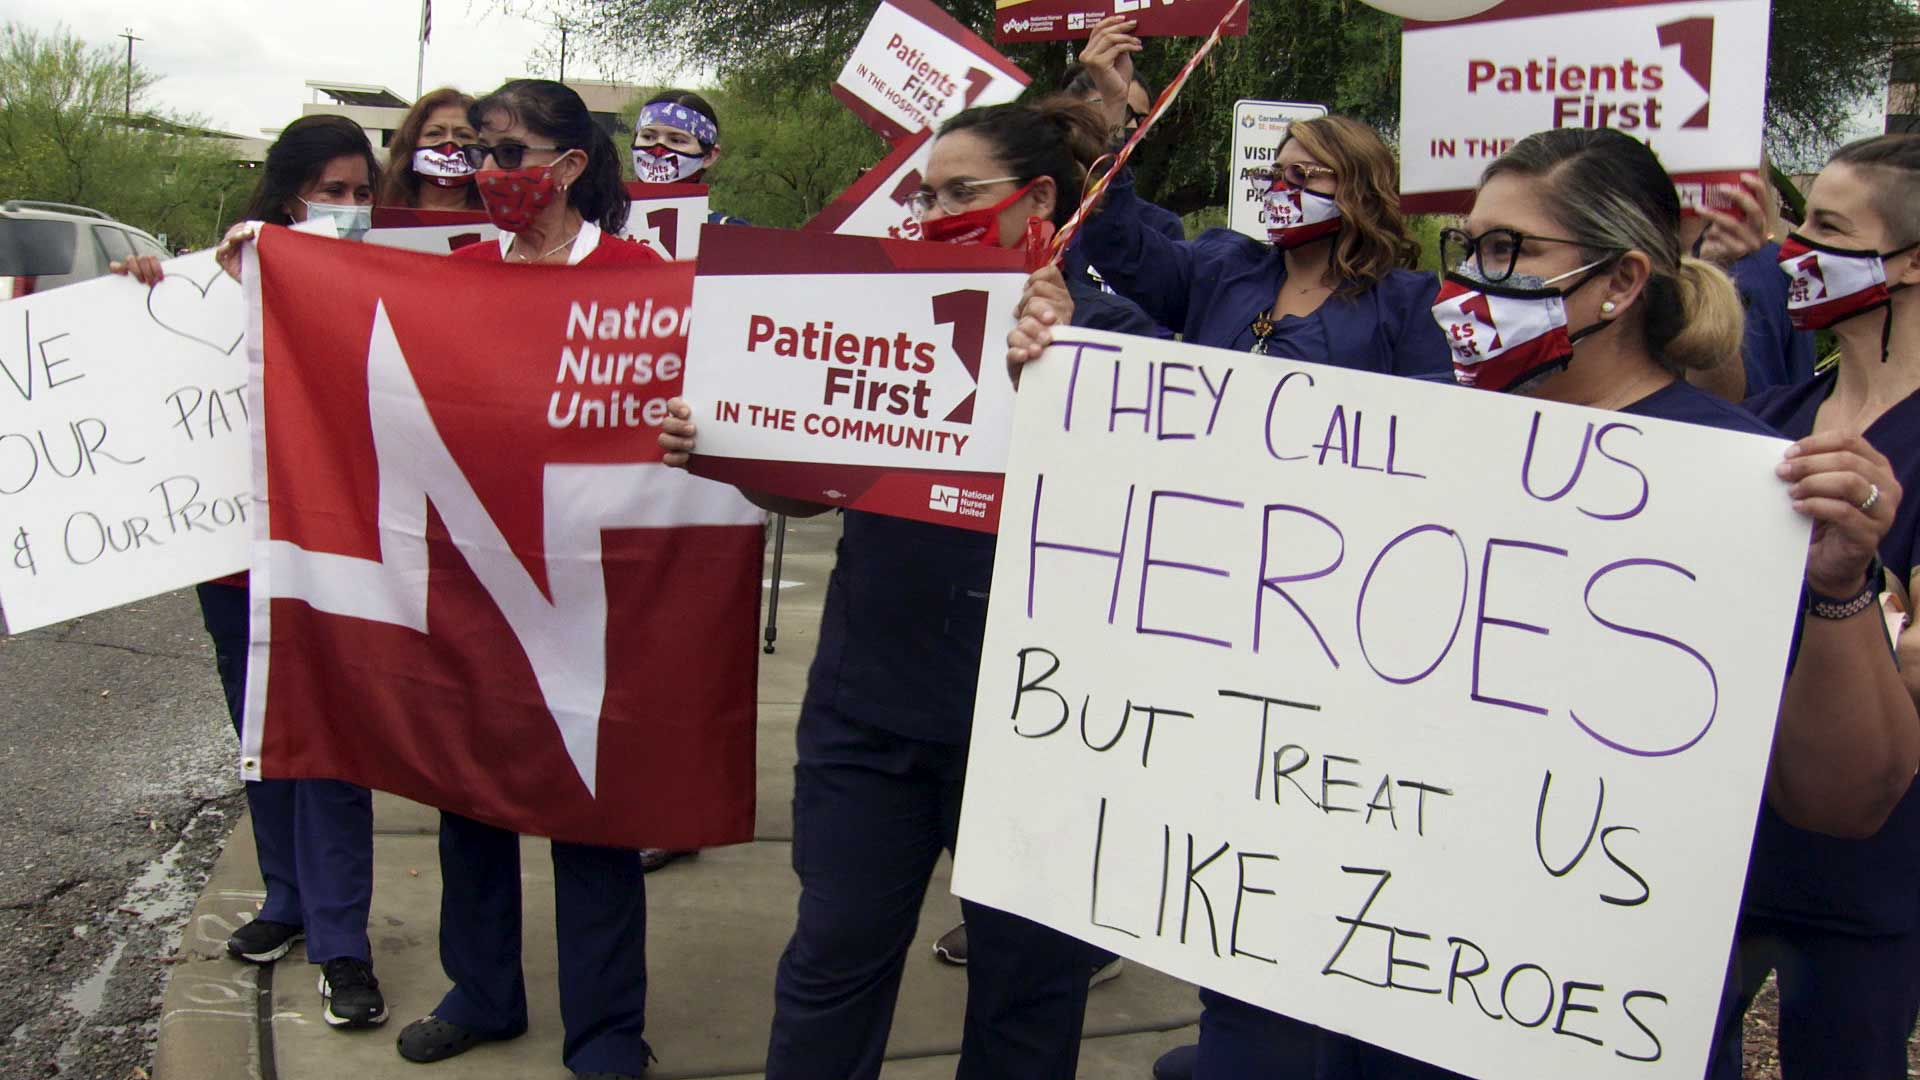 Nurses protest staffing shortages outside St. Mary's Hospital in Tucson on July 14, 2021.